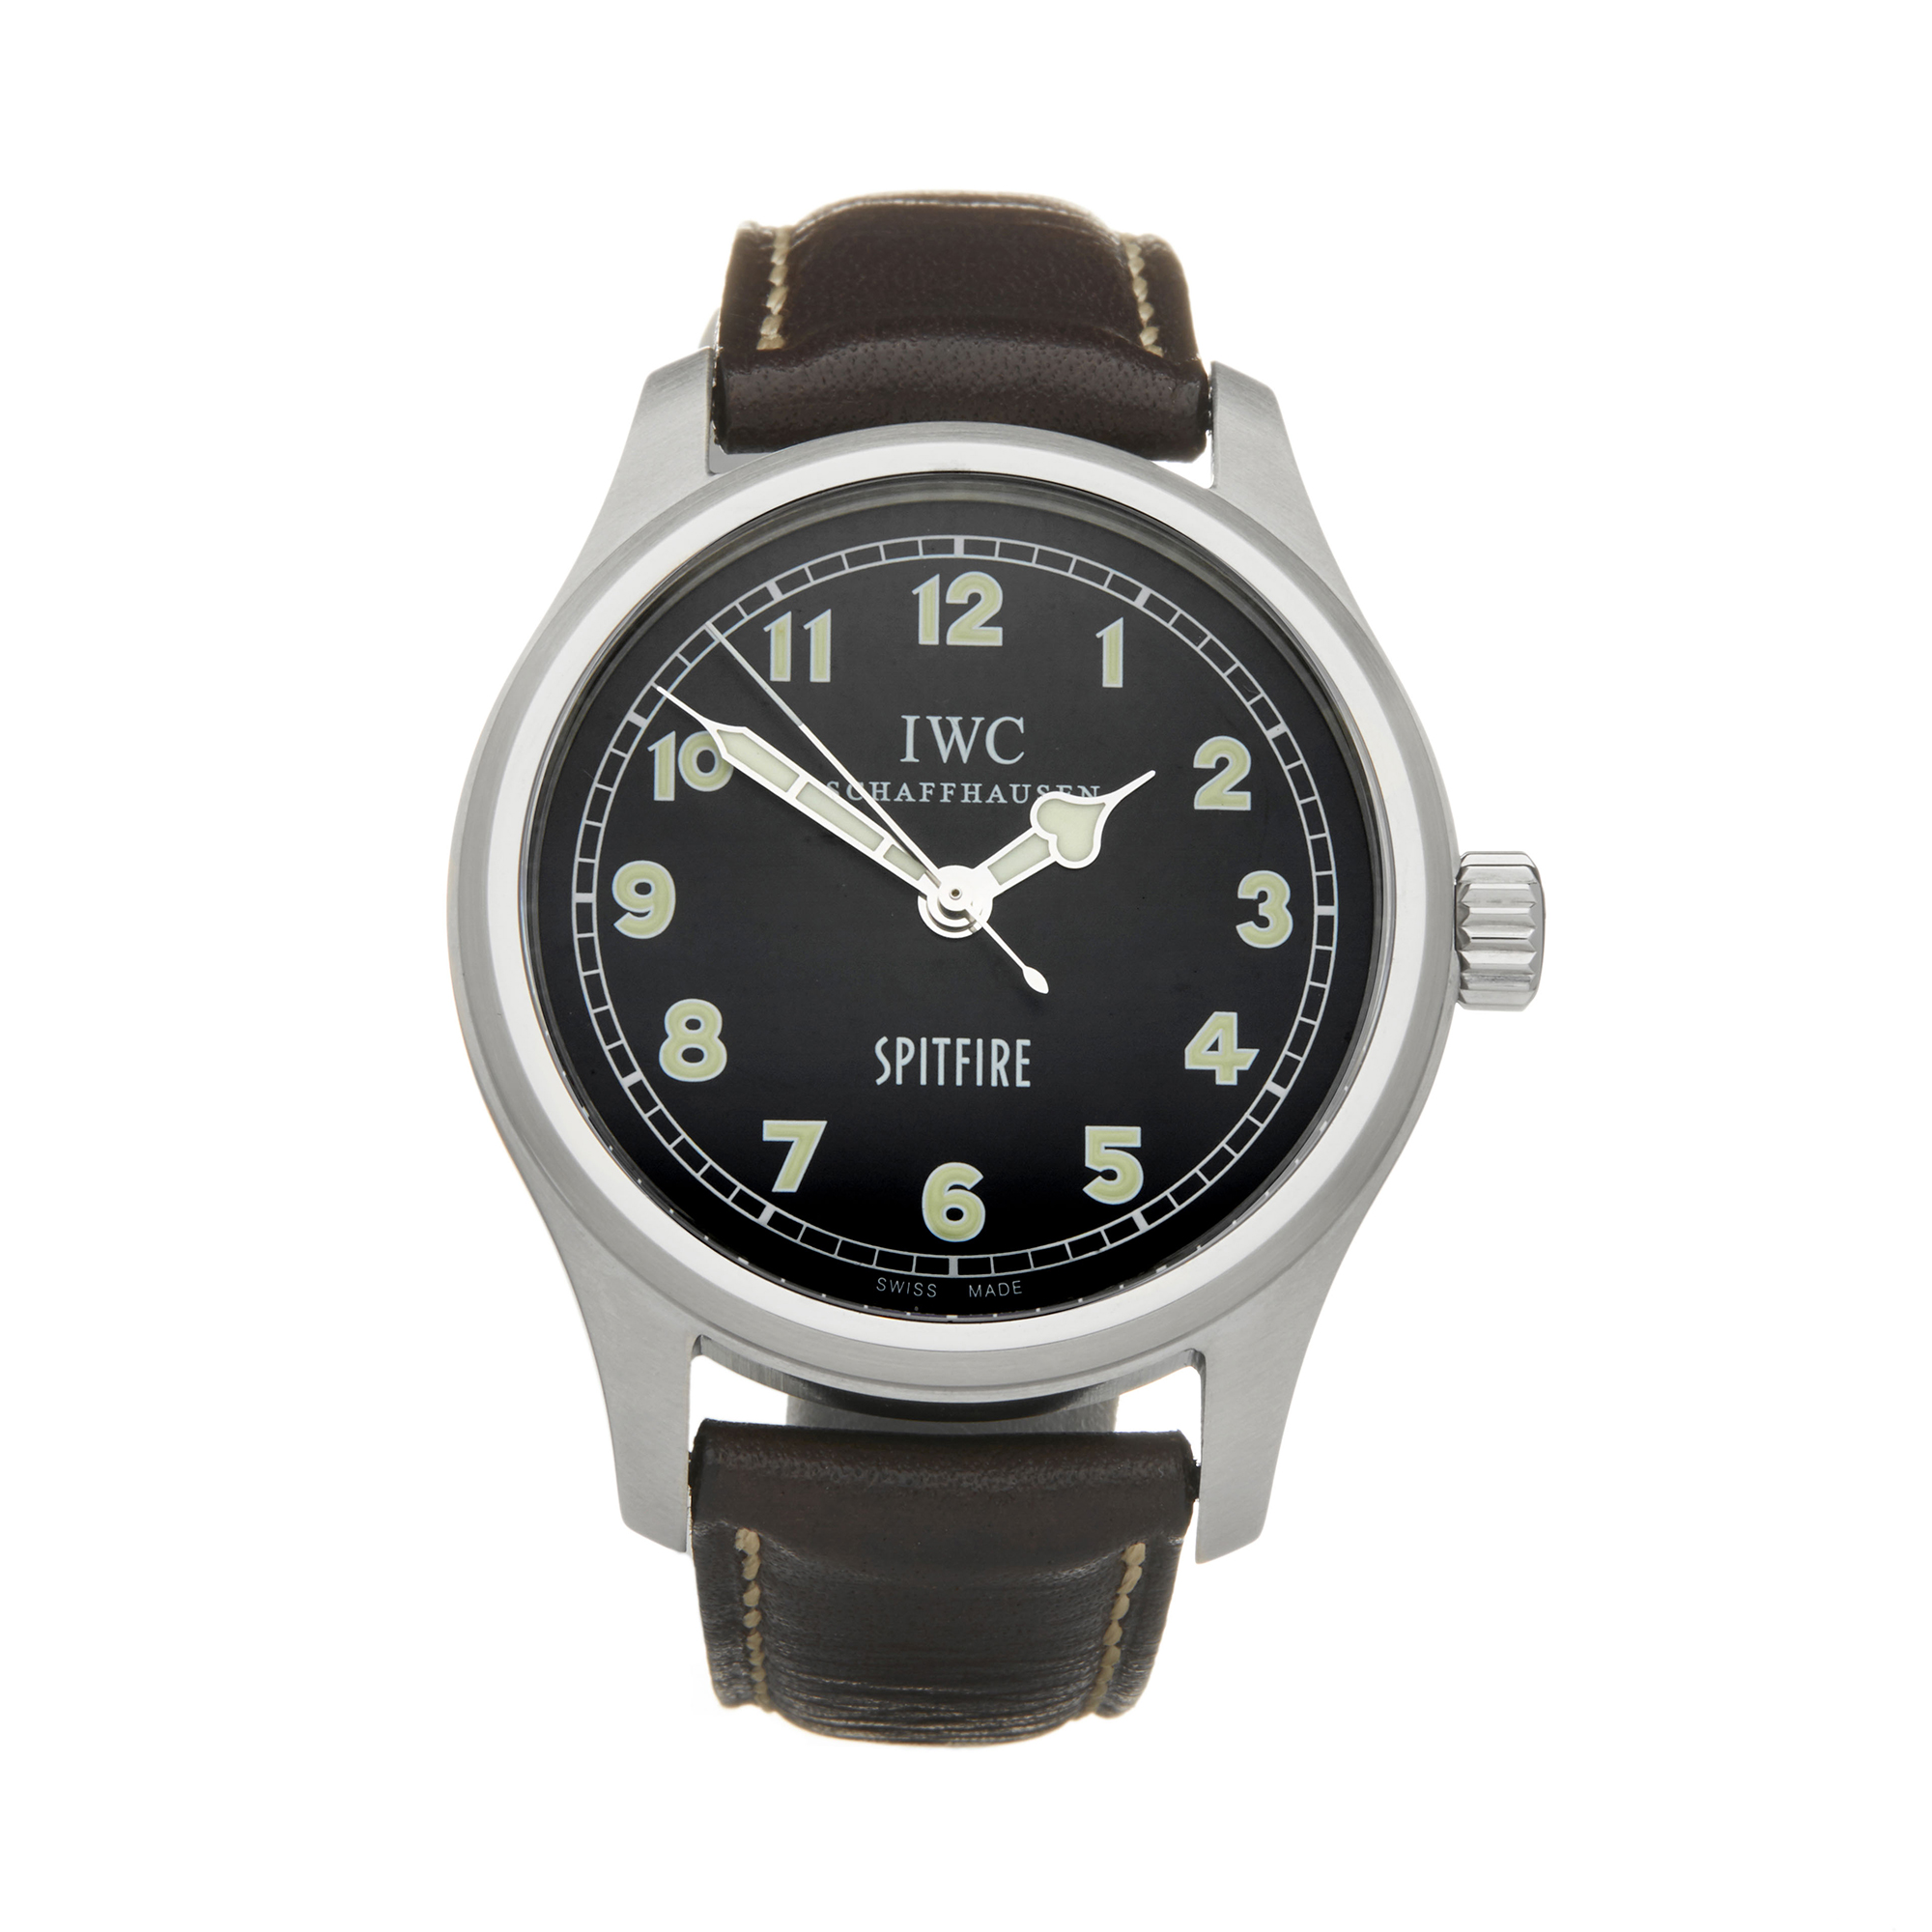 Pilot's Spitfire IW325305 Men Stainless Steel MK XV Limited Edition of 1000 pieces Watch - Image 10 of 10